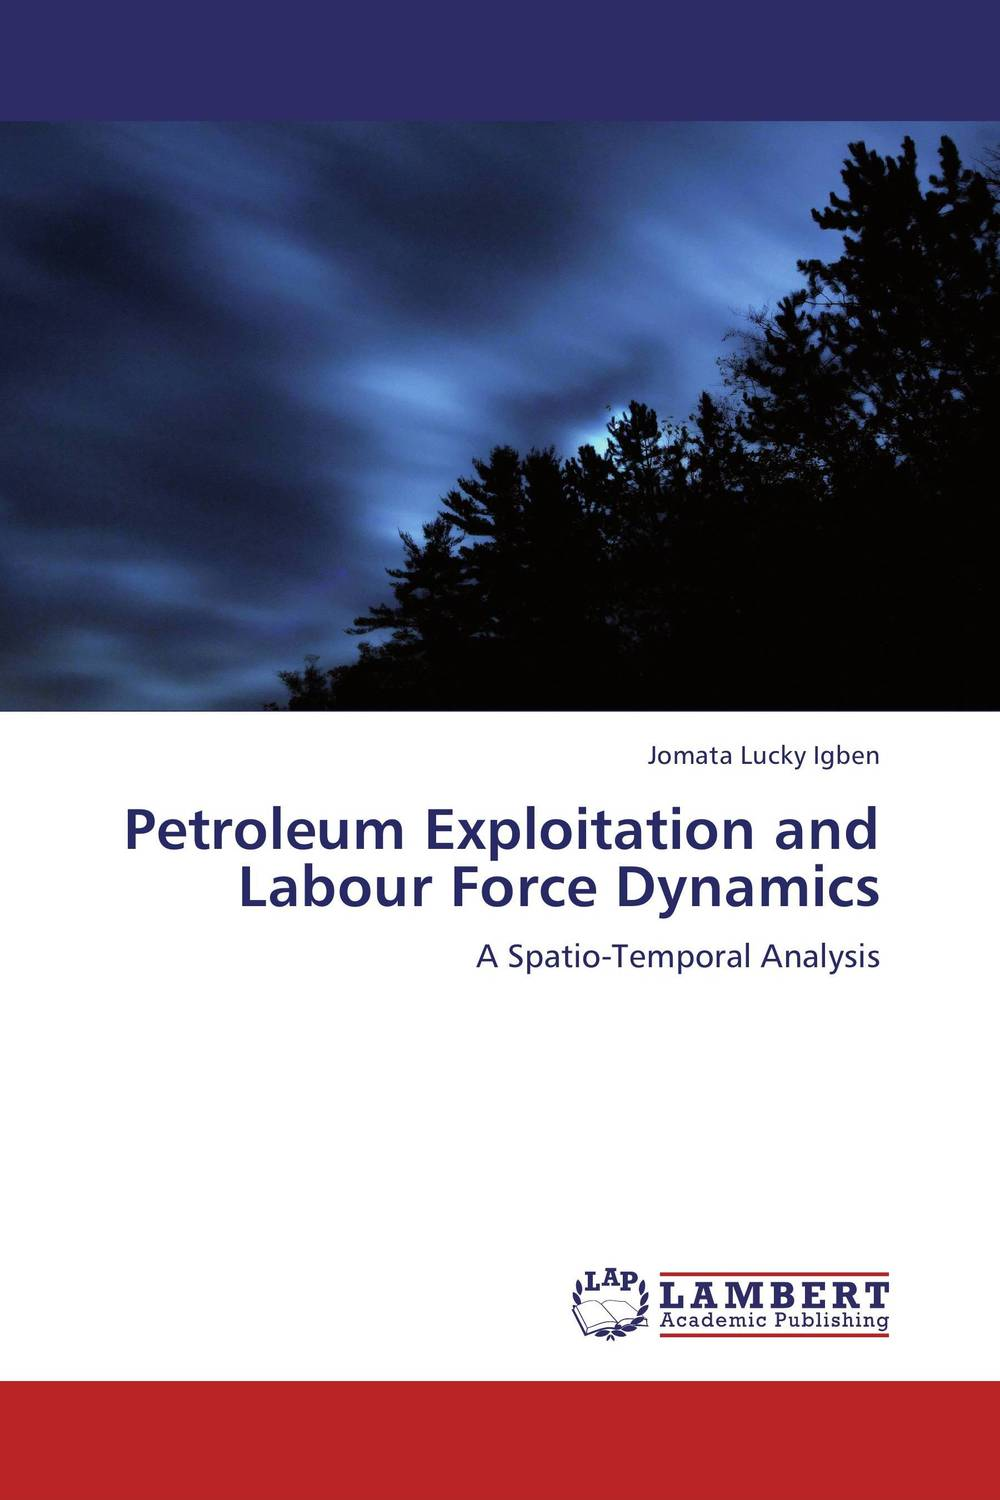 Petroleum Exploitation and Labour Force Dynamics